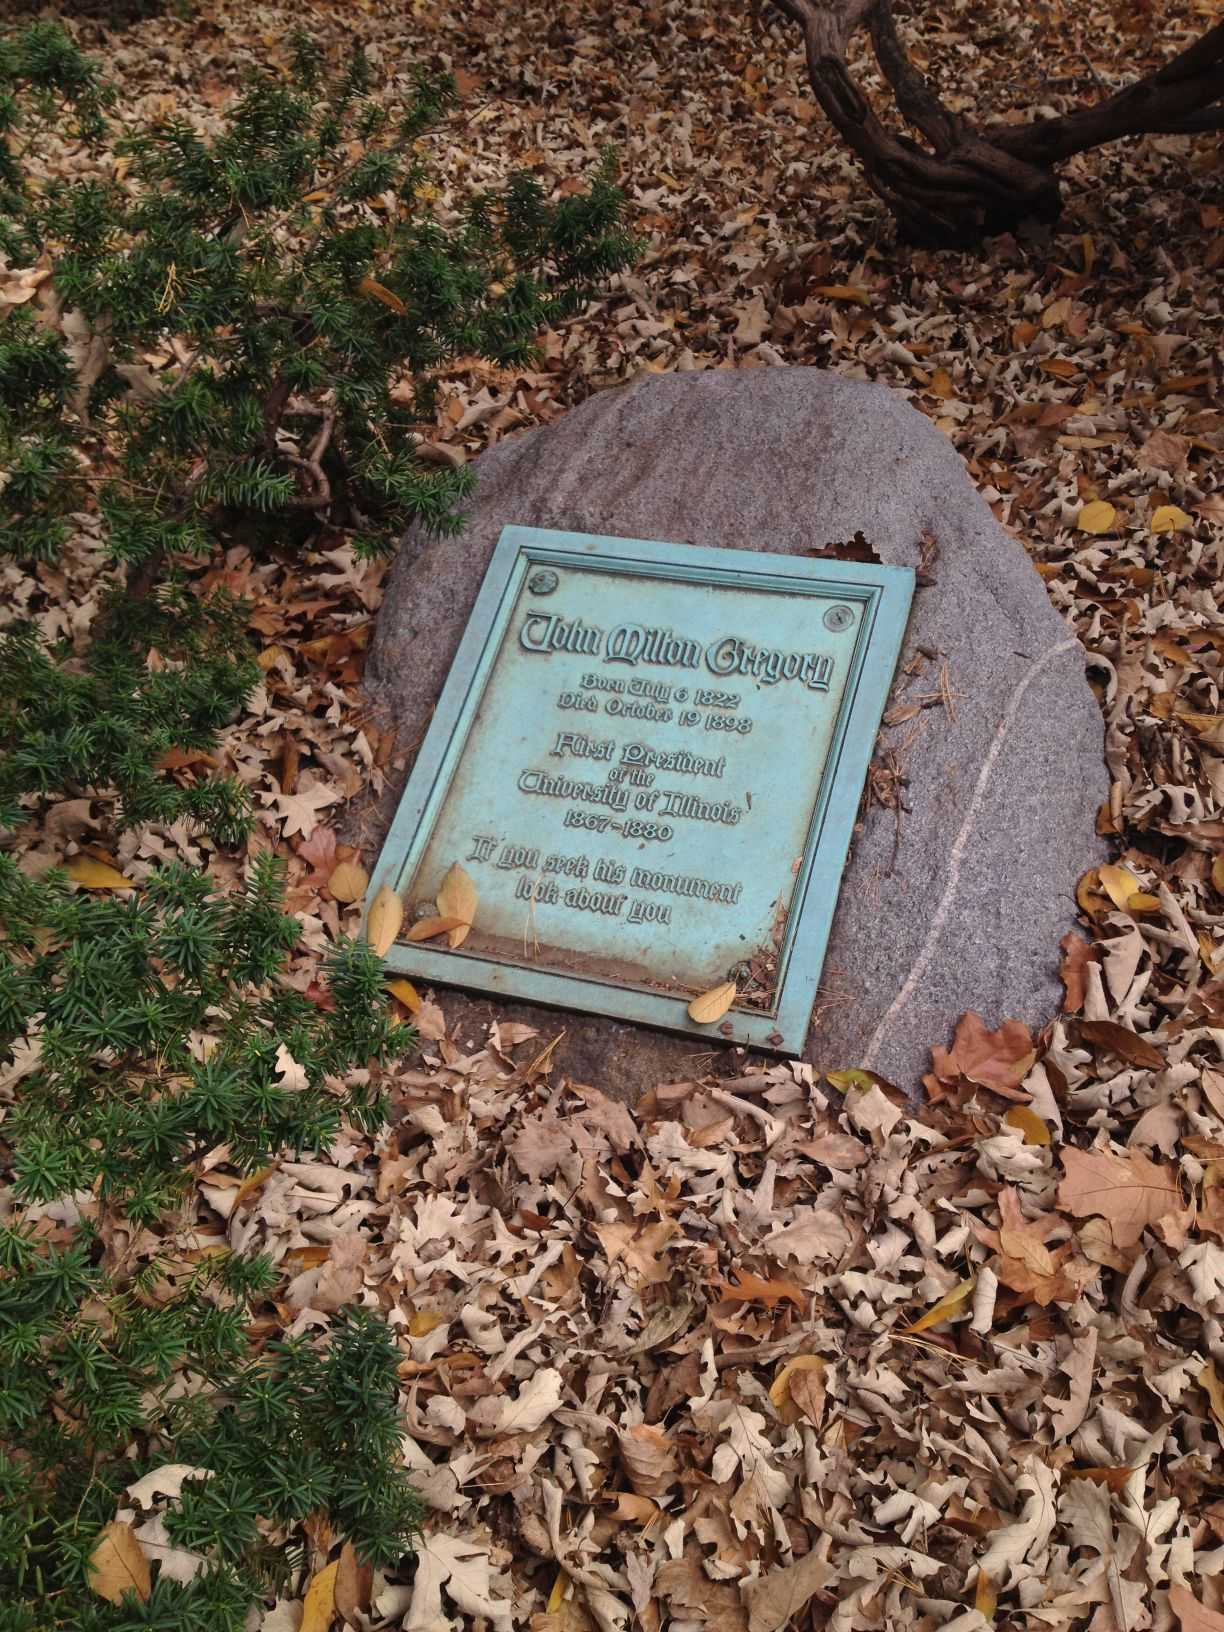 John Milton Gregory's grave is placed between Altgeld Hall and the David Dodds Henry Administration Building. Several other University presidents are also buried on campus, including Burrill.